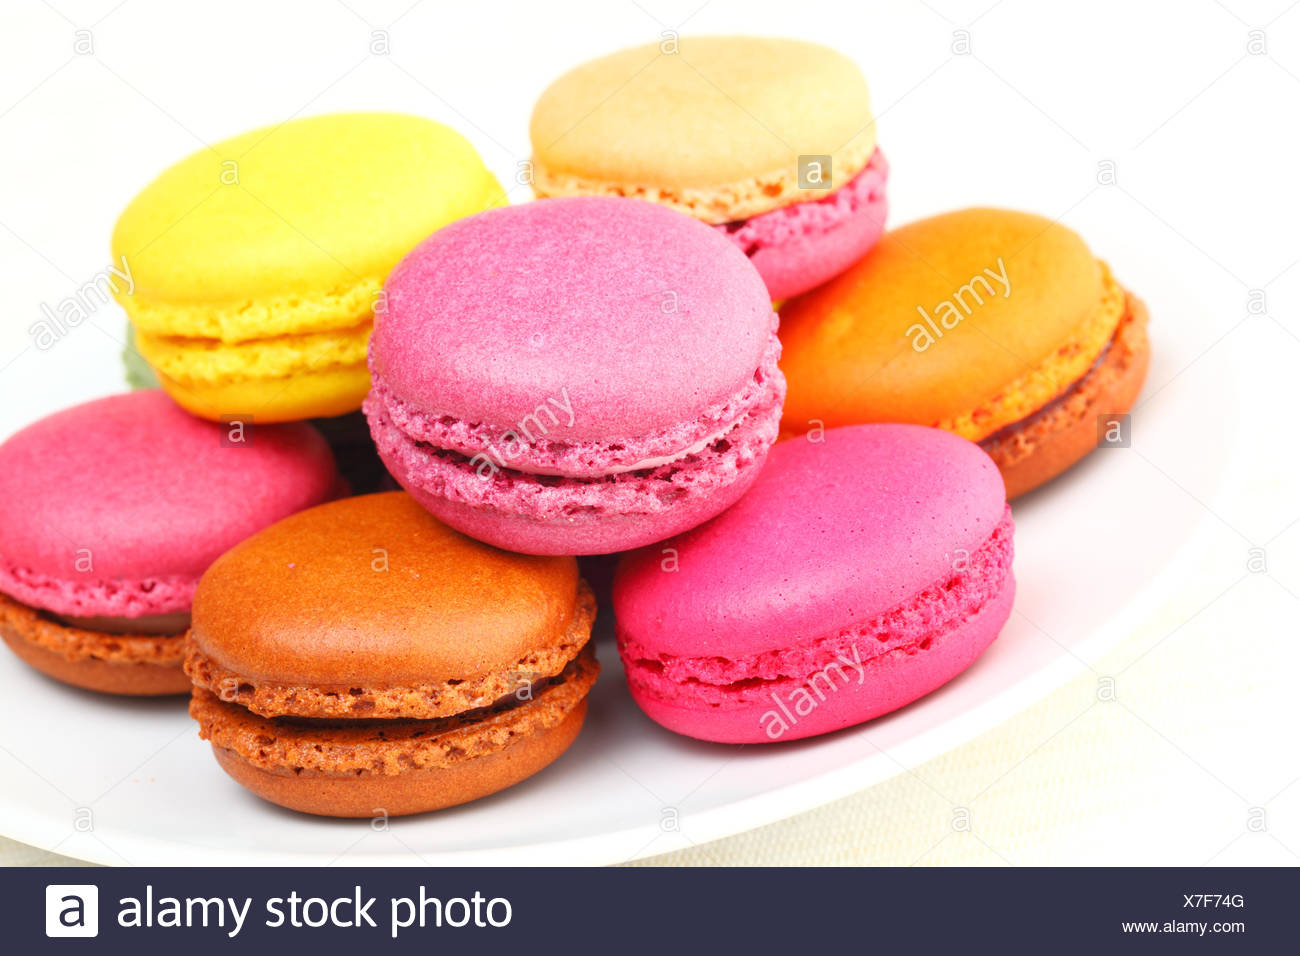 sweet cake pie cakes cookie biscuit almond confectionery confectinery colorful macaroon dessert snack plate vibrant macron - Stock Image